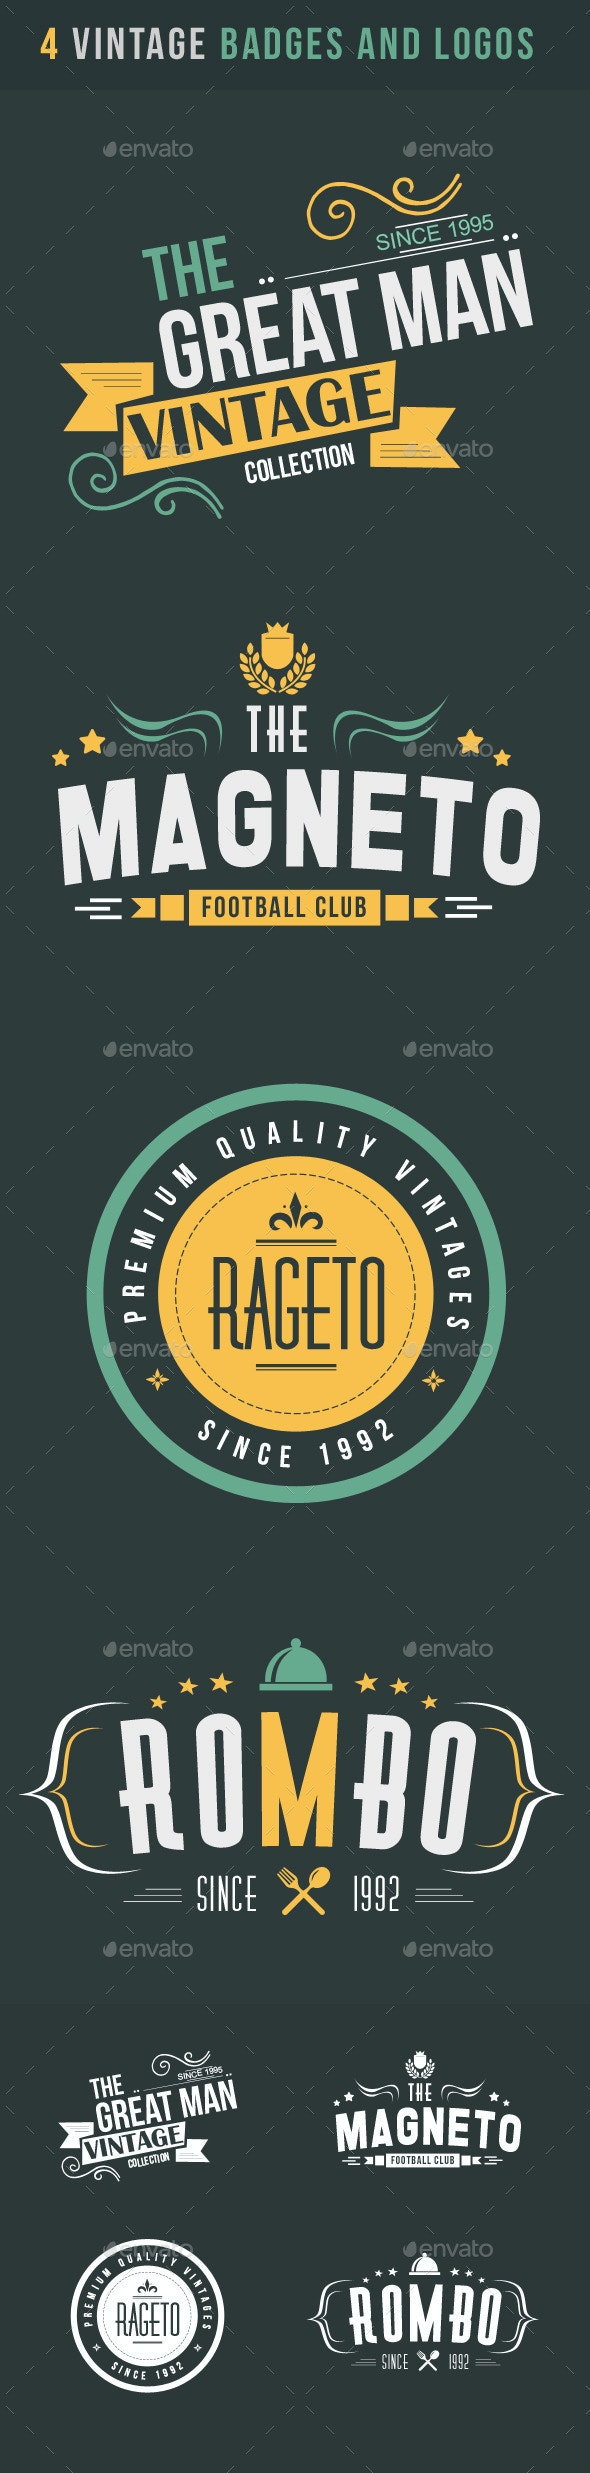 4 Vintage Badges And Logos - Badges & Stickers Web Elements